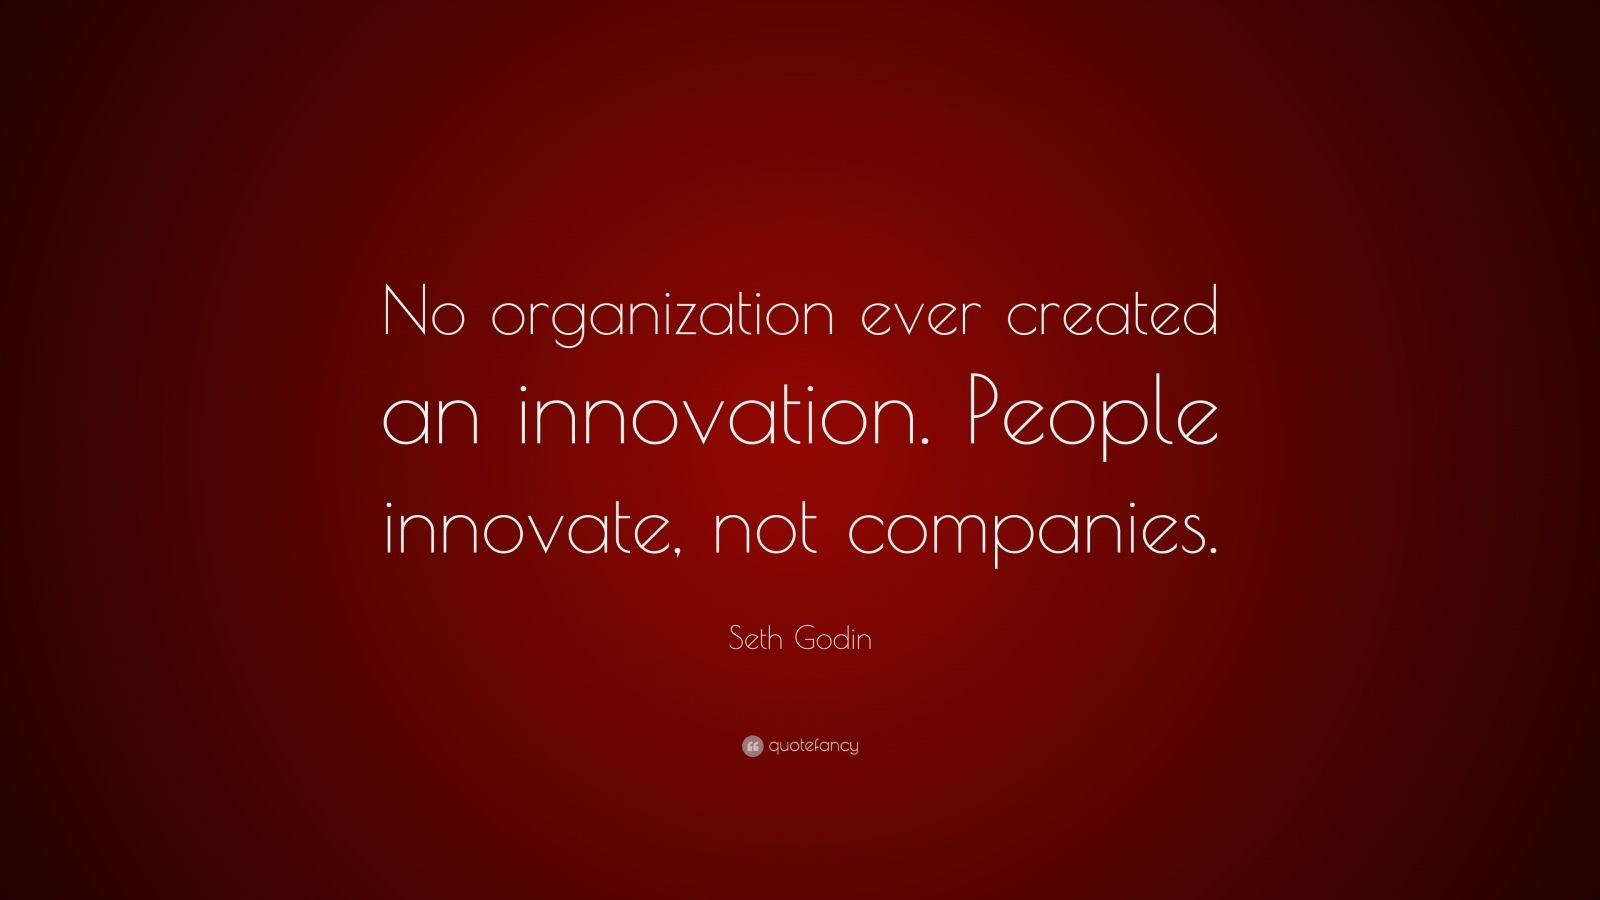 """Seth Godin Quote: """"No organization ever created an innovation. People innovate, not companies."""""""